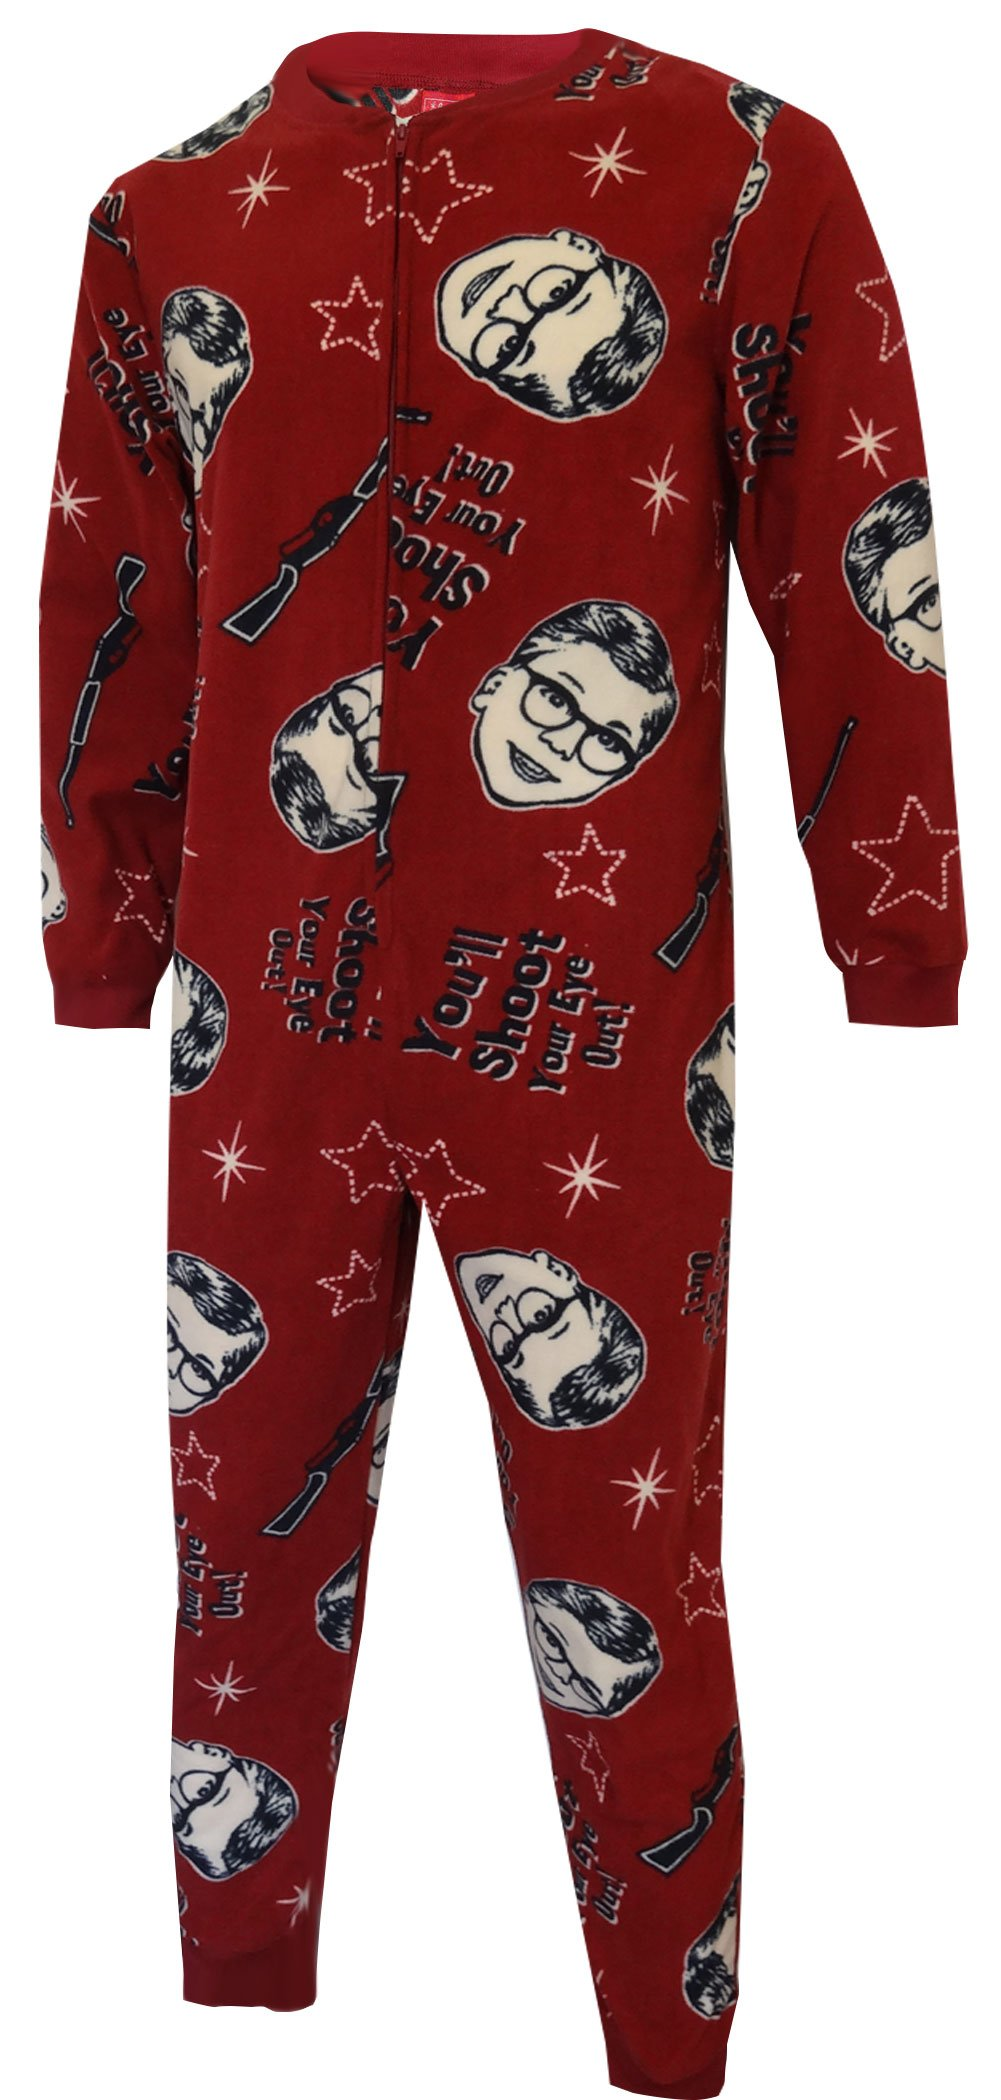 A Christmas Story Shoot Your Eye Out Union Suit Pajama for menA Christmas Story Shoot Your Eye Out Union Suit Pajama for men